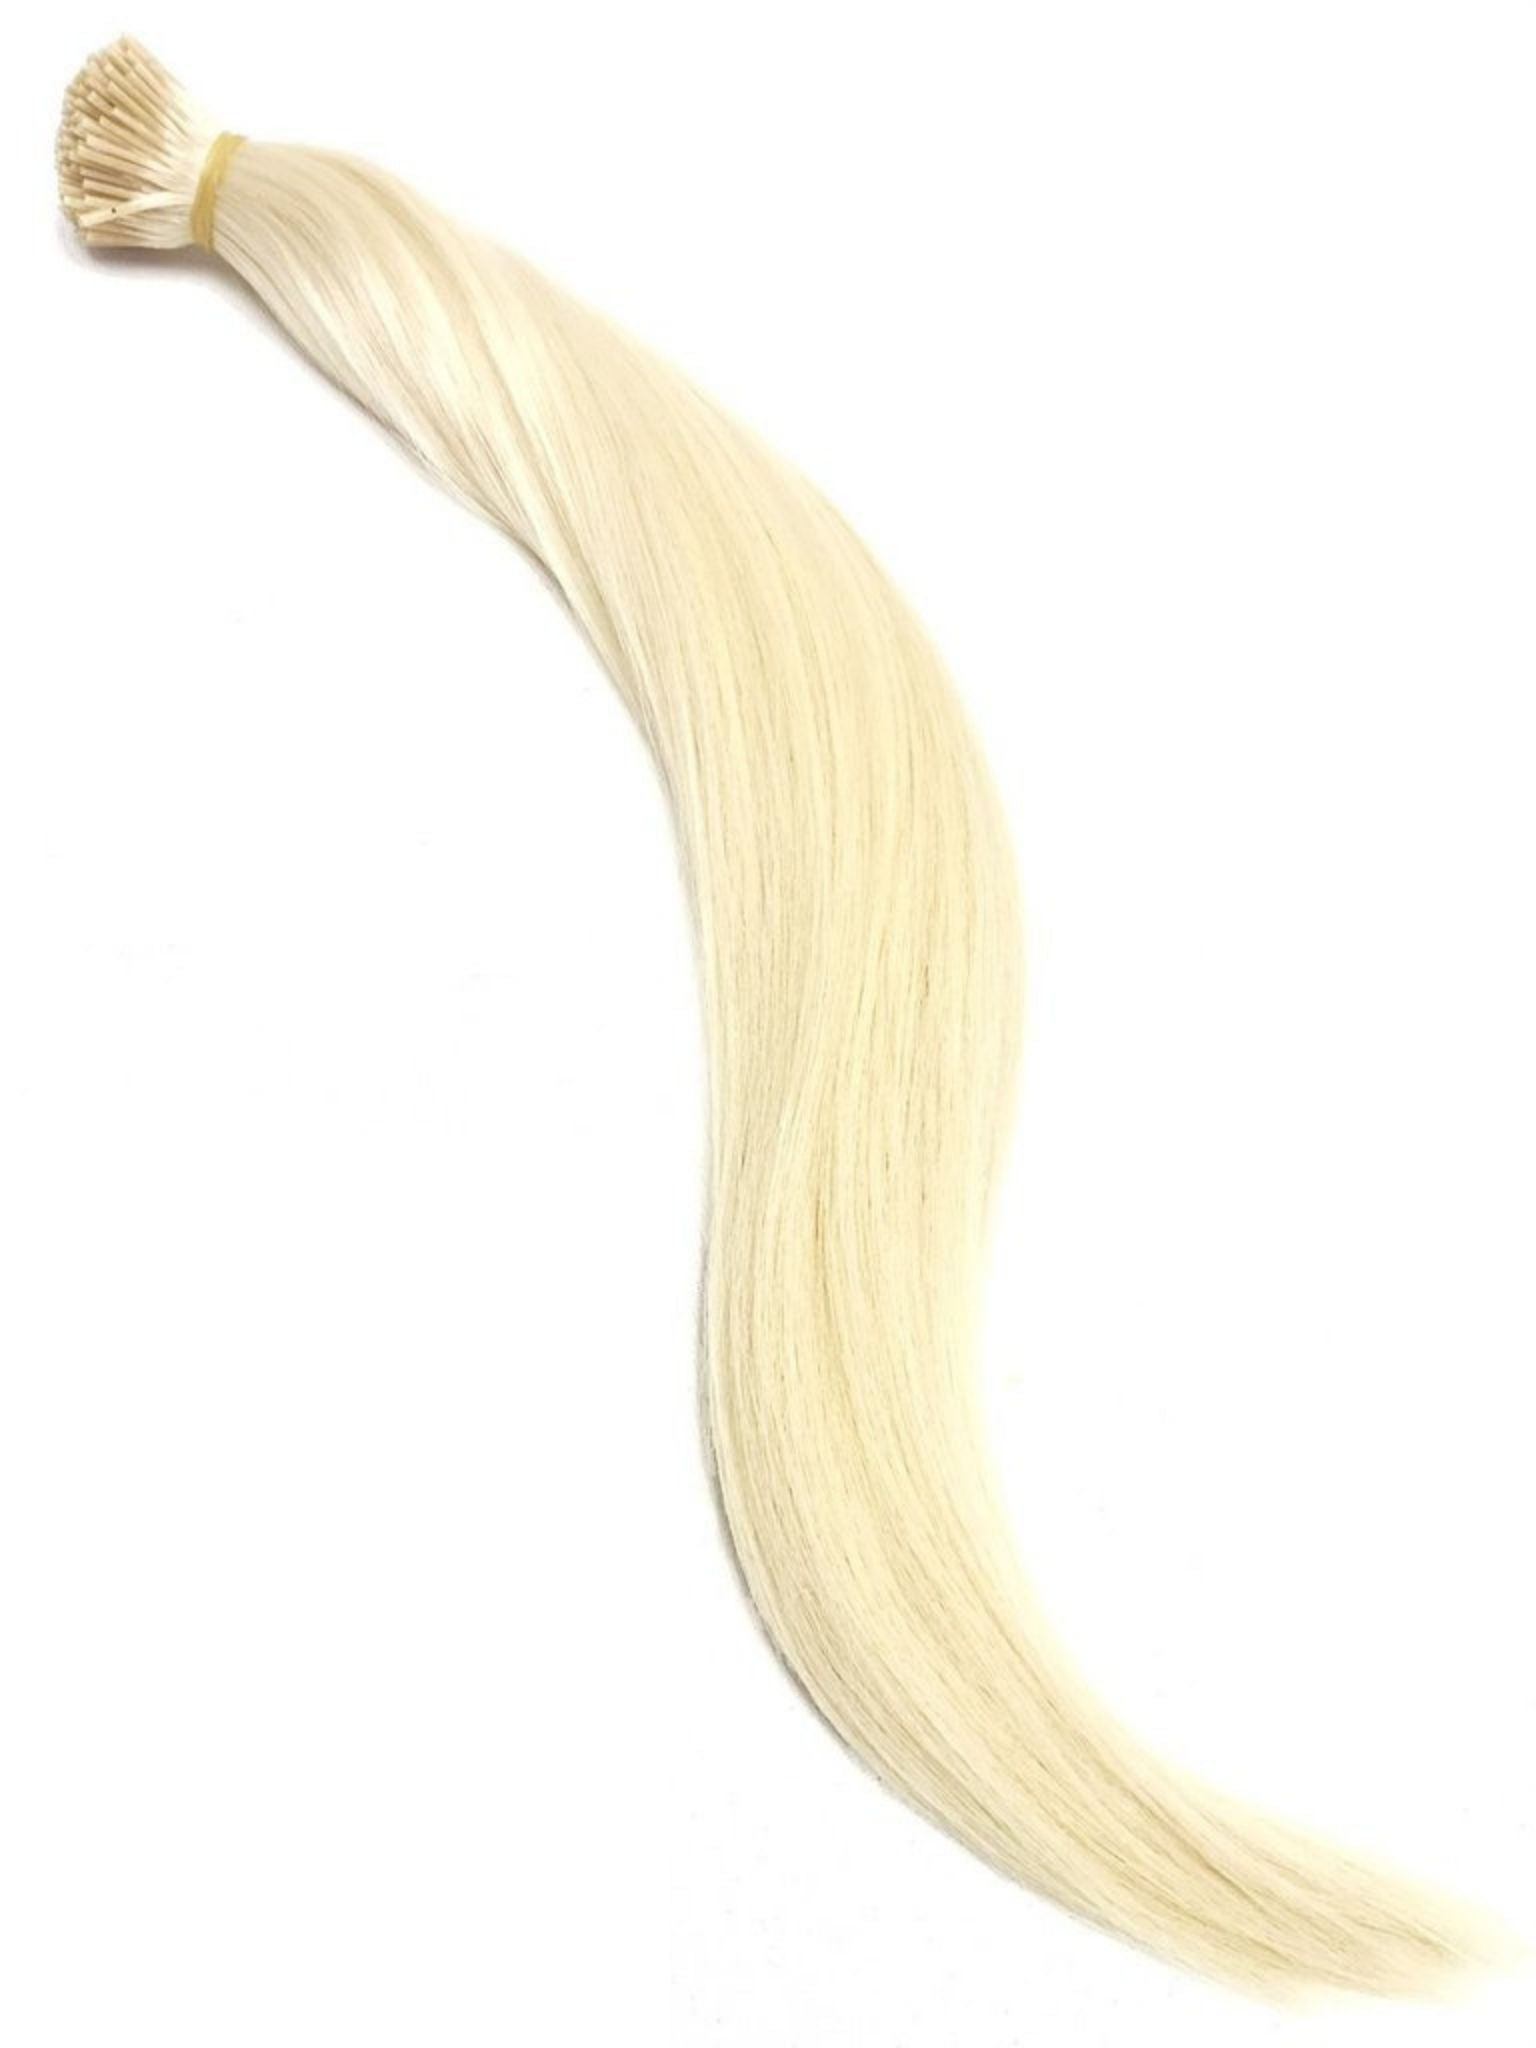 Stick Tip Hair Extensions - Platinum Blonde #60